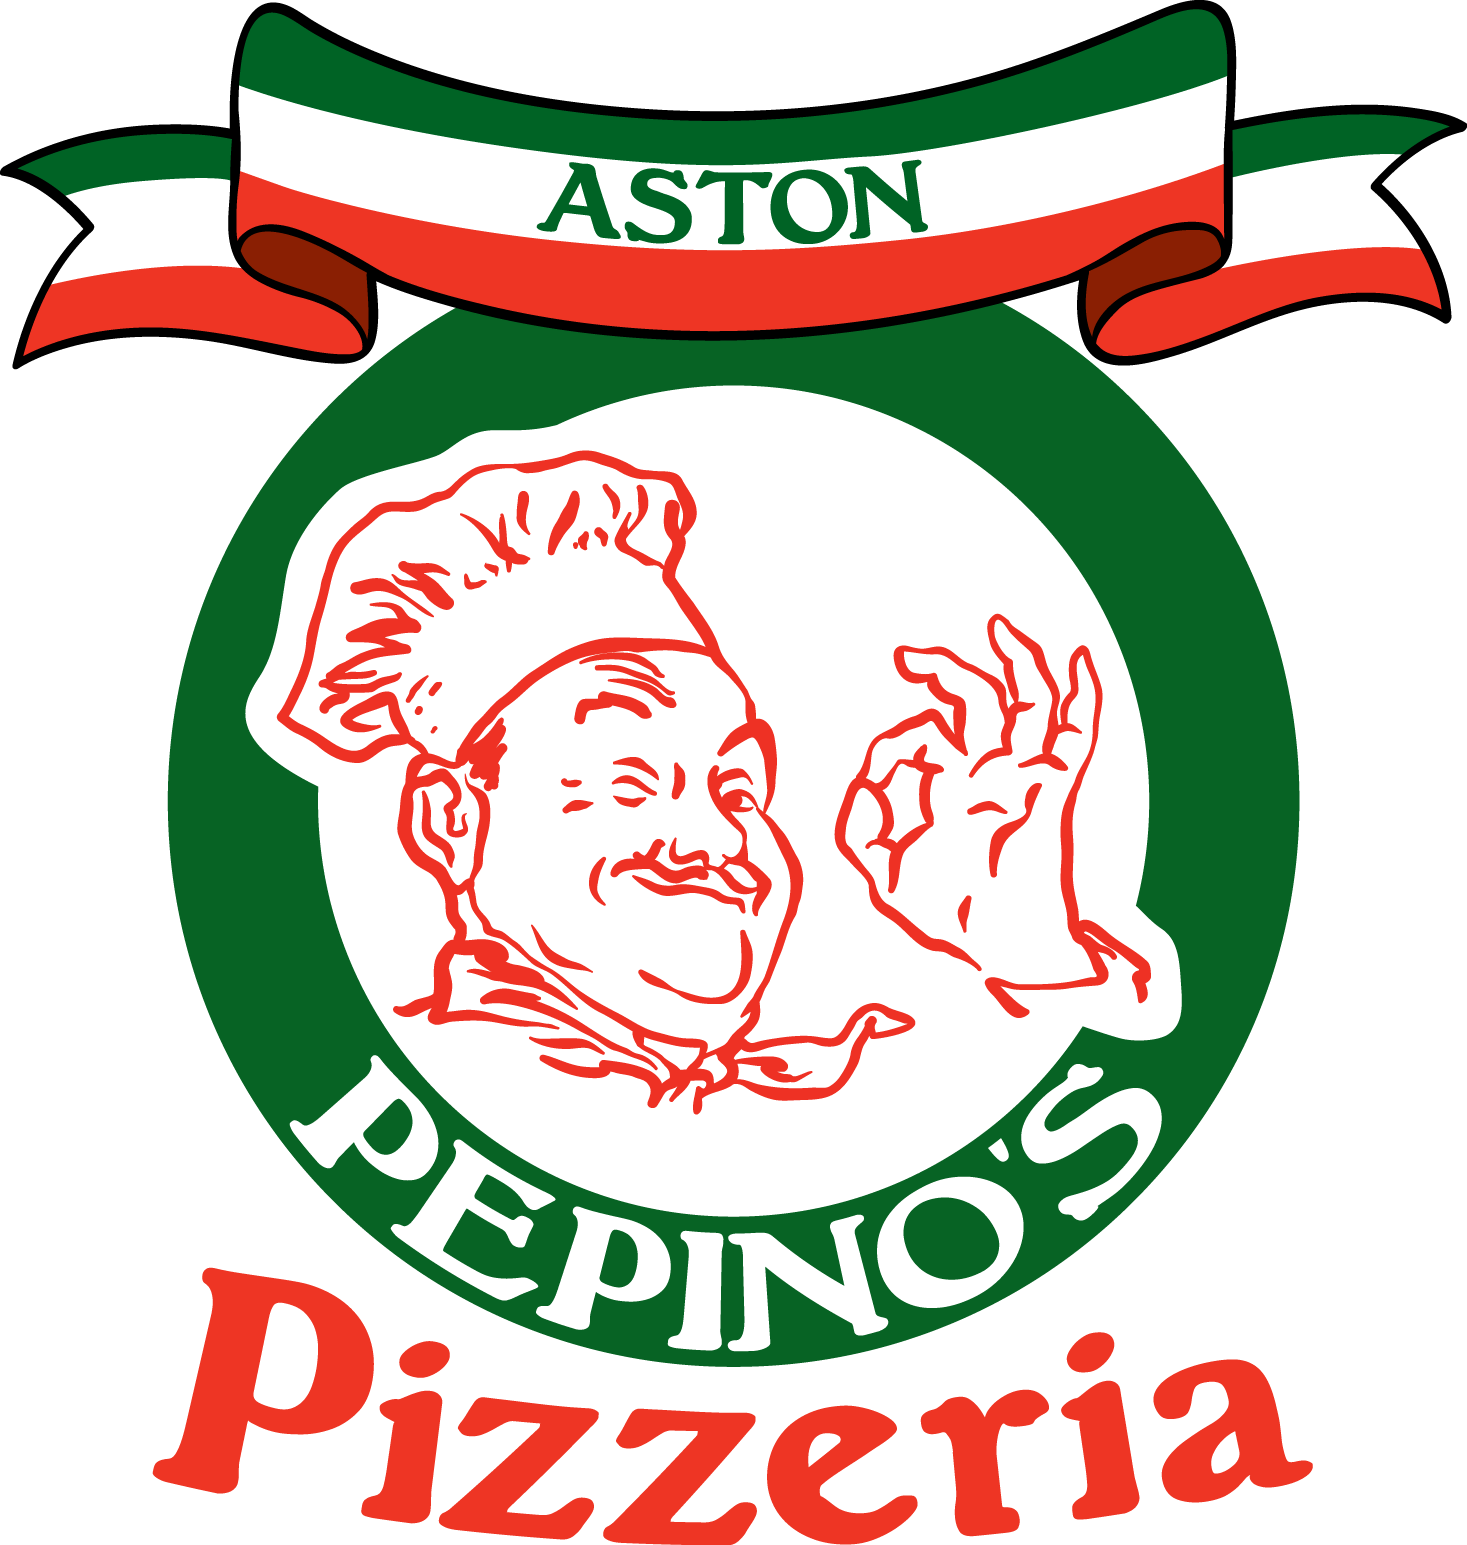 Pepino's Pizza and Catering in Aston